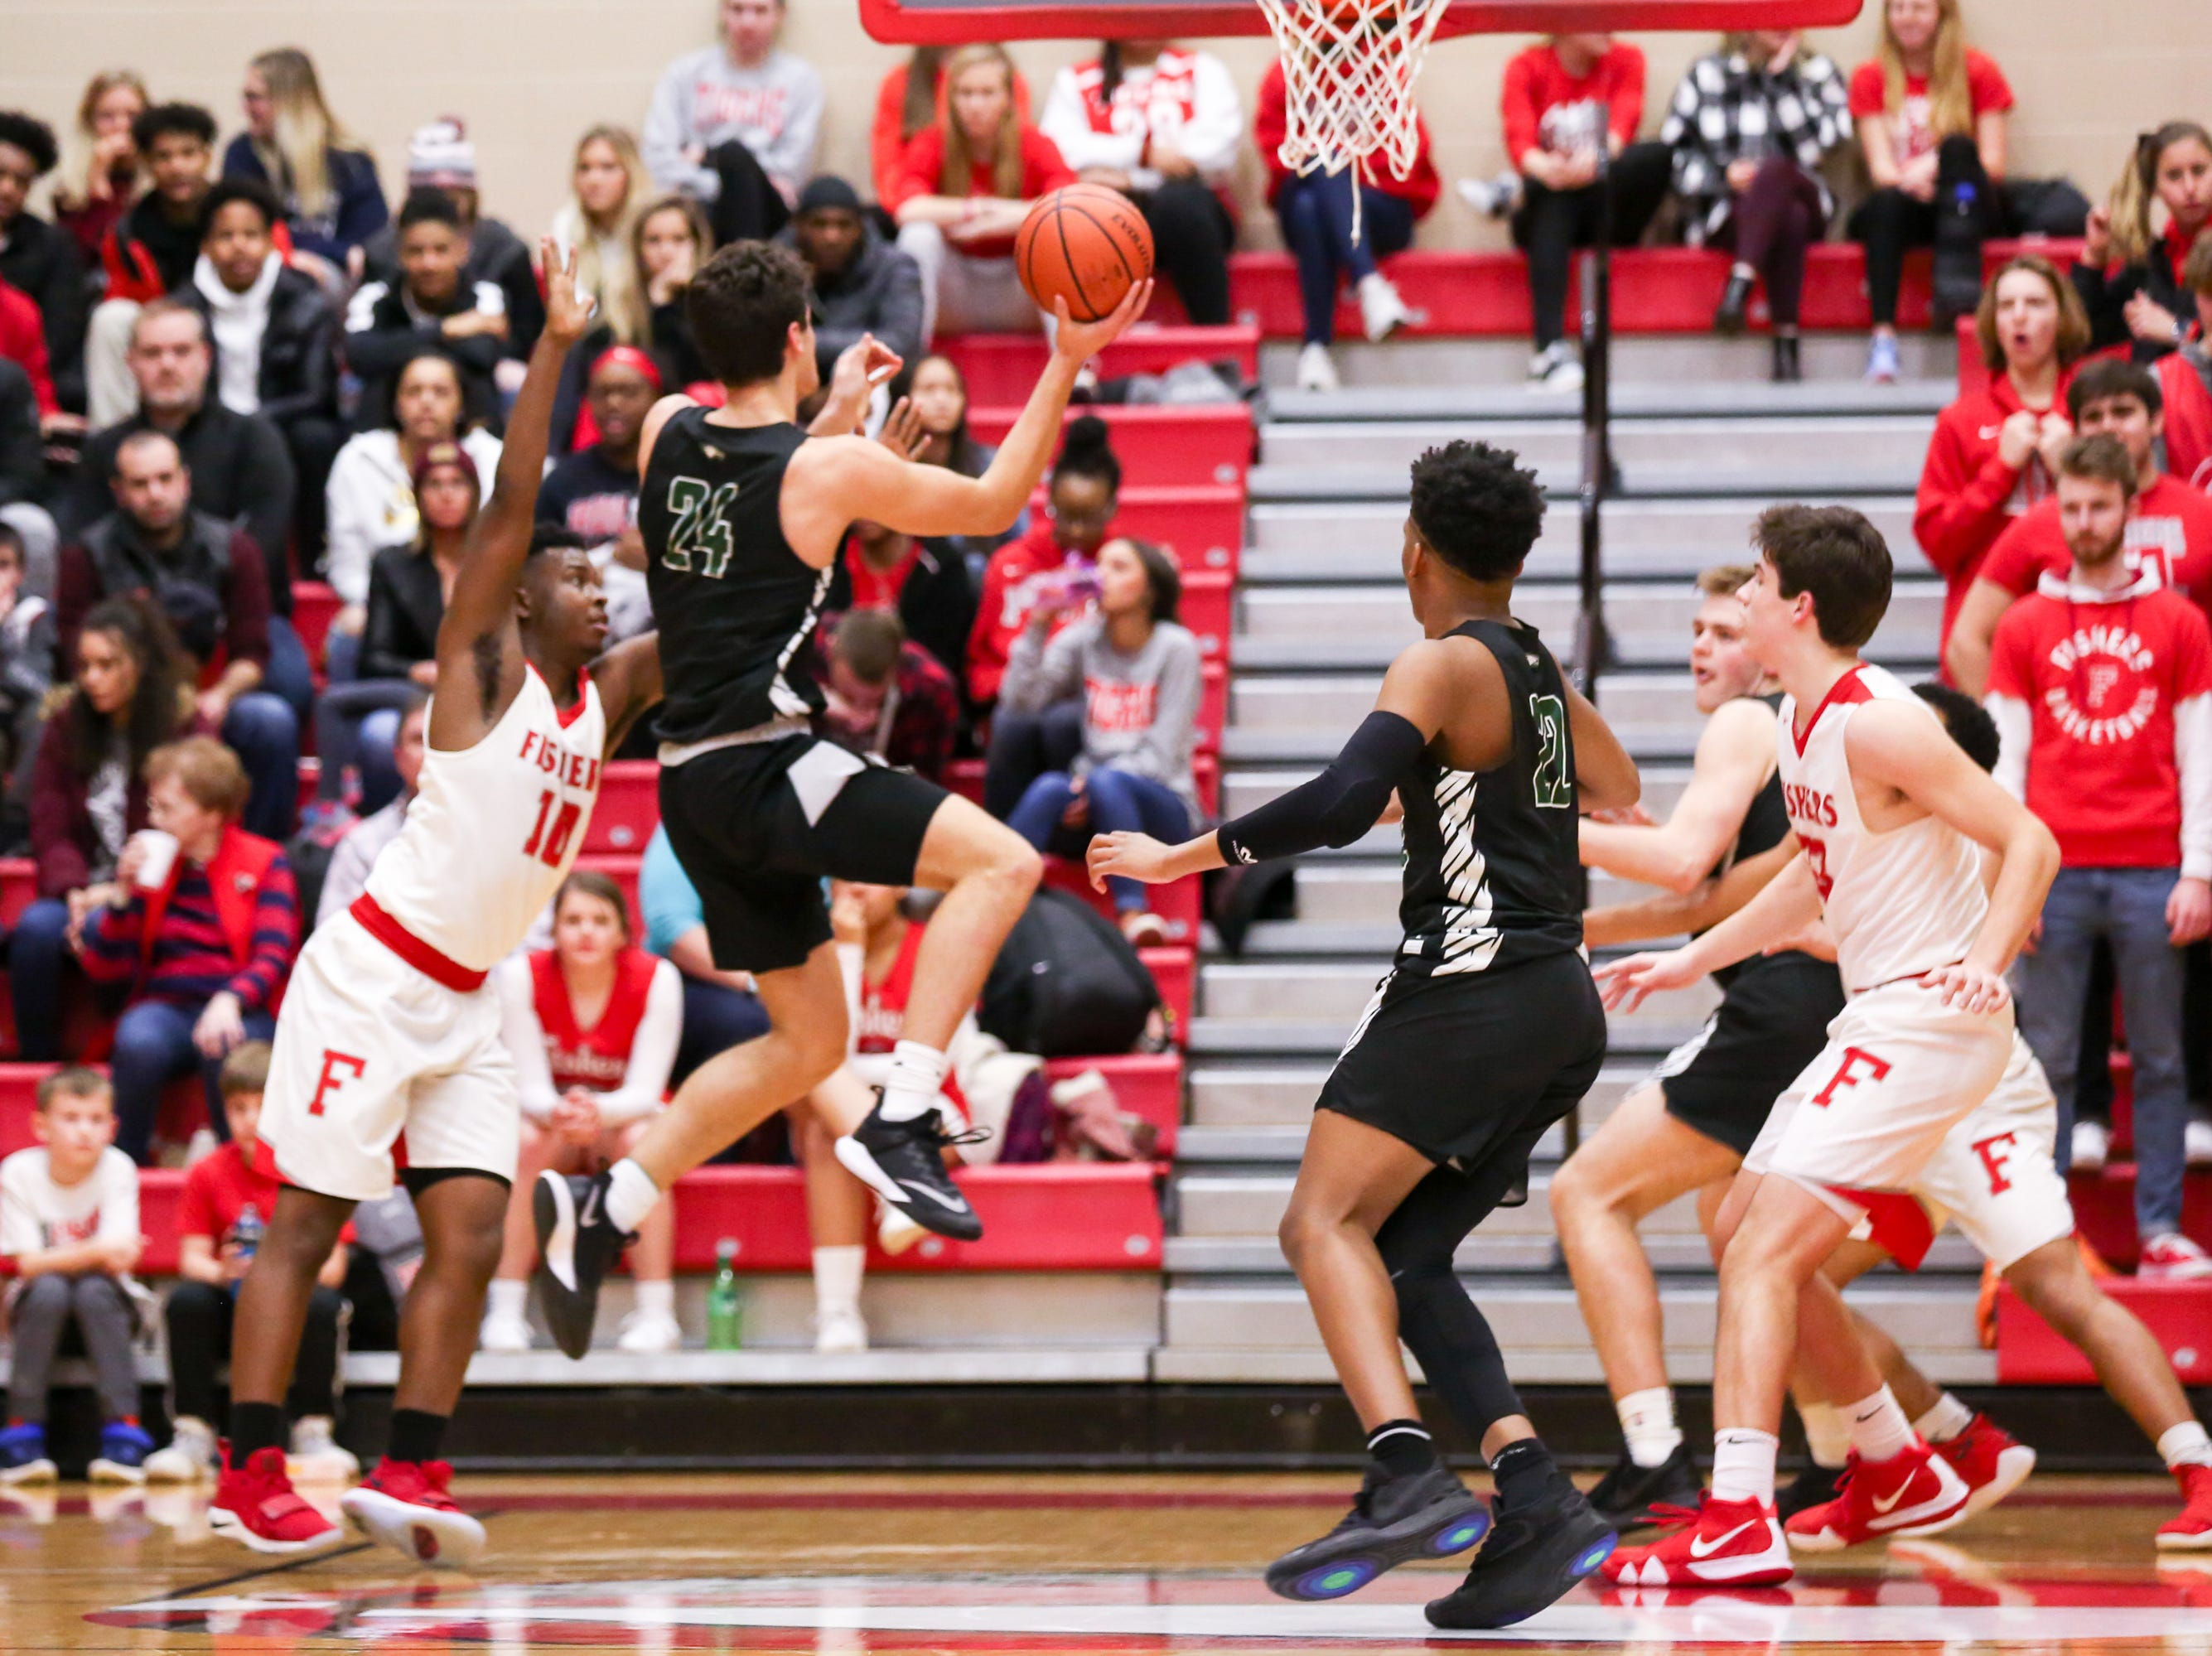 Zionsville Nathan Childress (24) with the short jump shot during the first half of Zionsville vs. Fishers high school boys varsity basketball game held at Fishers High School, February 15, 2019.